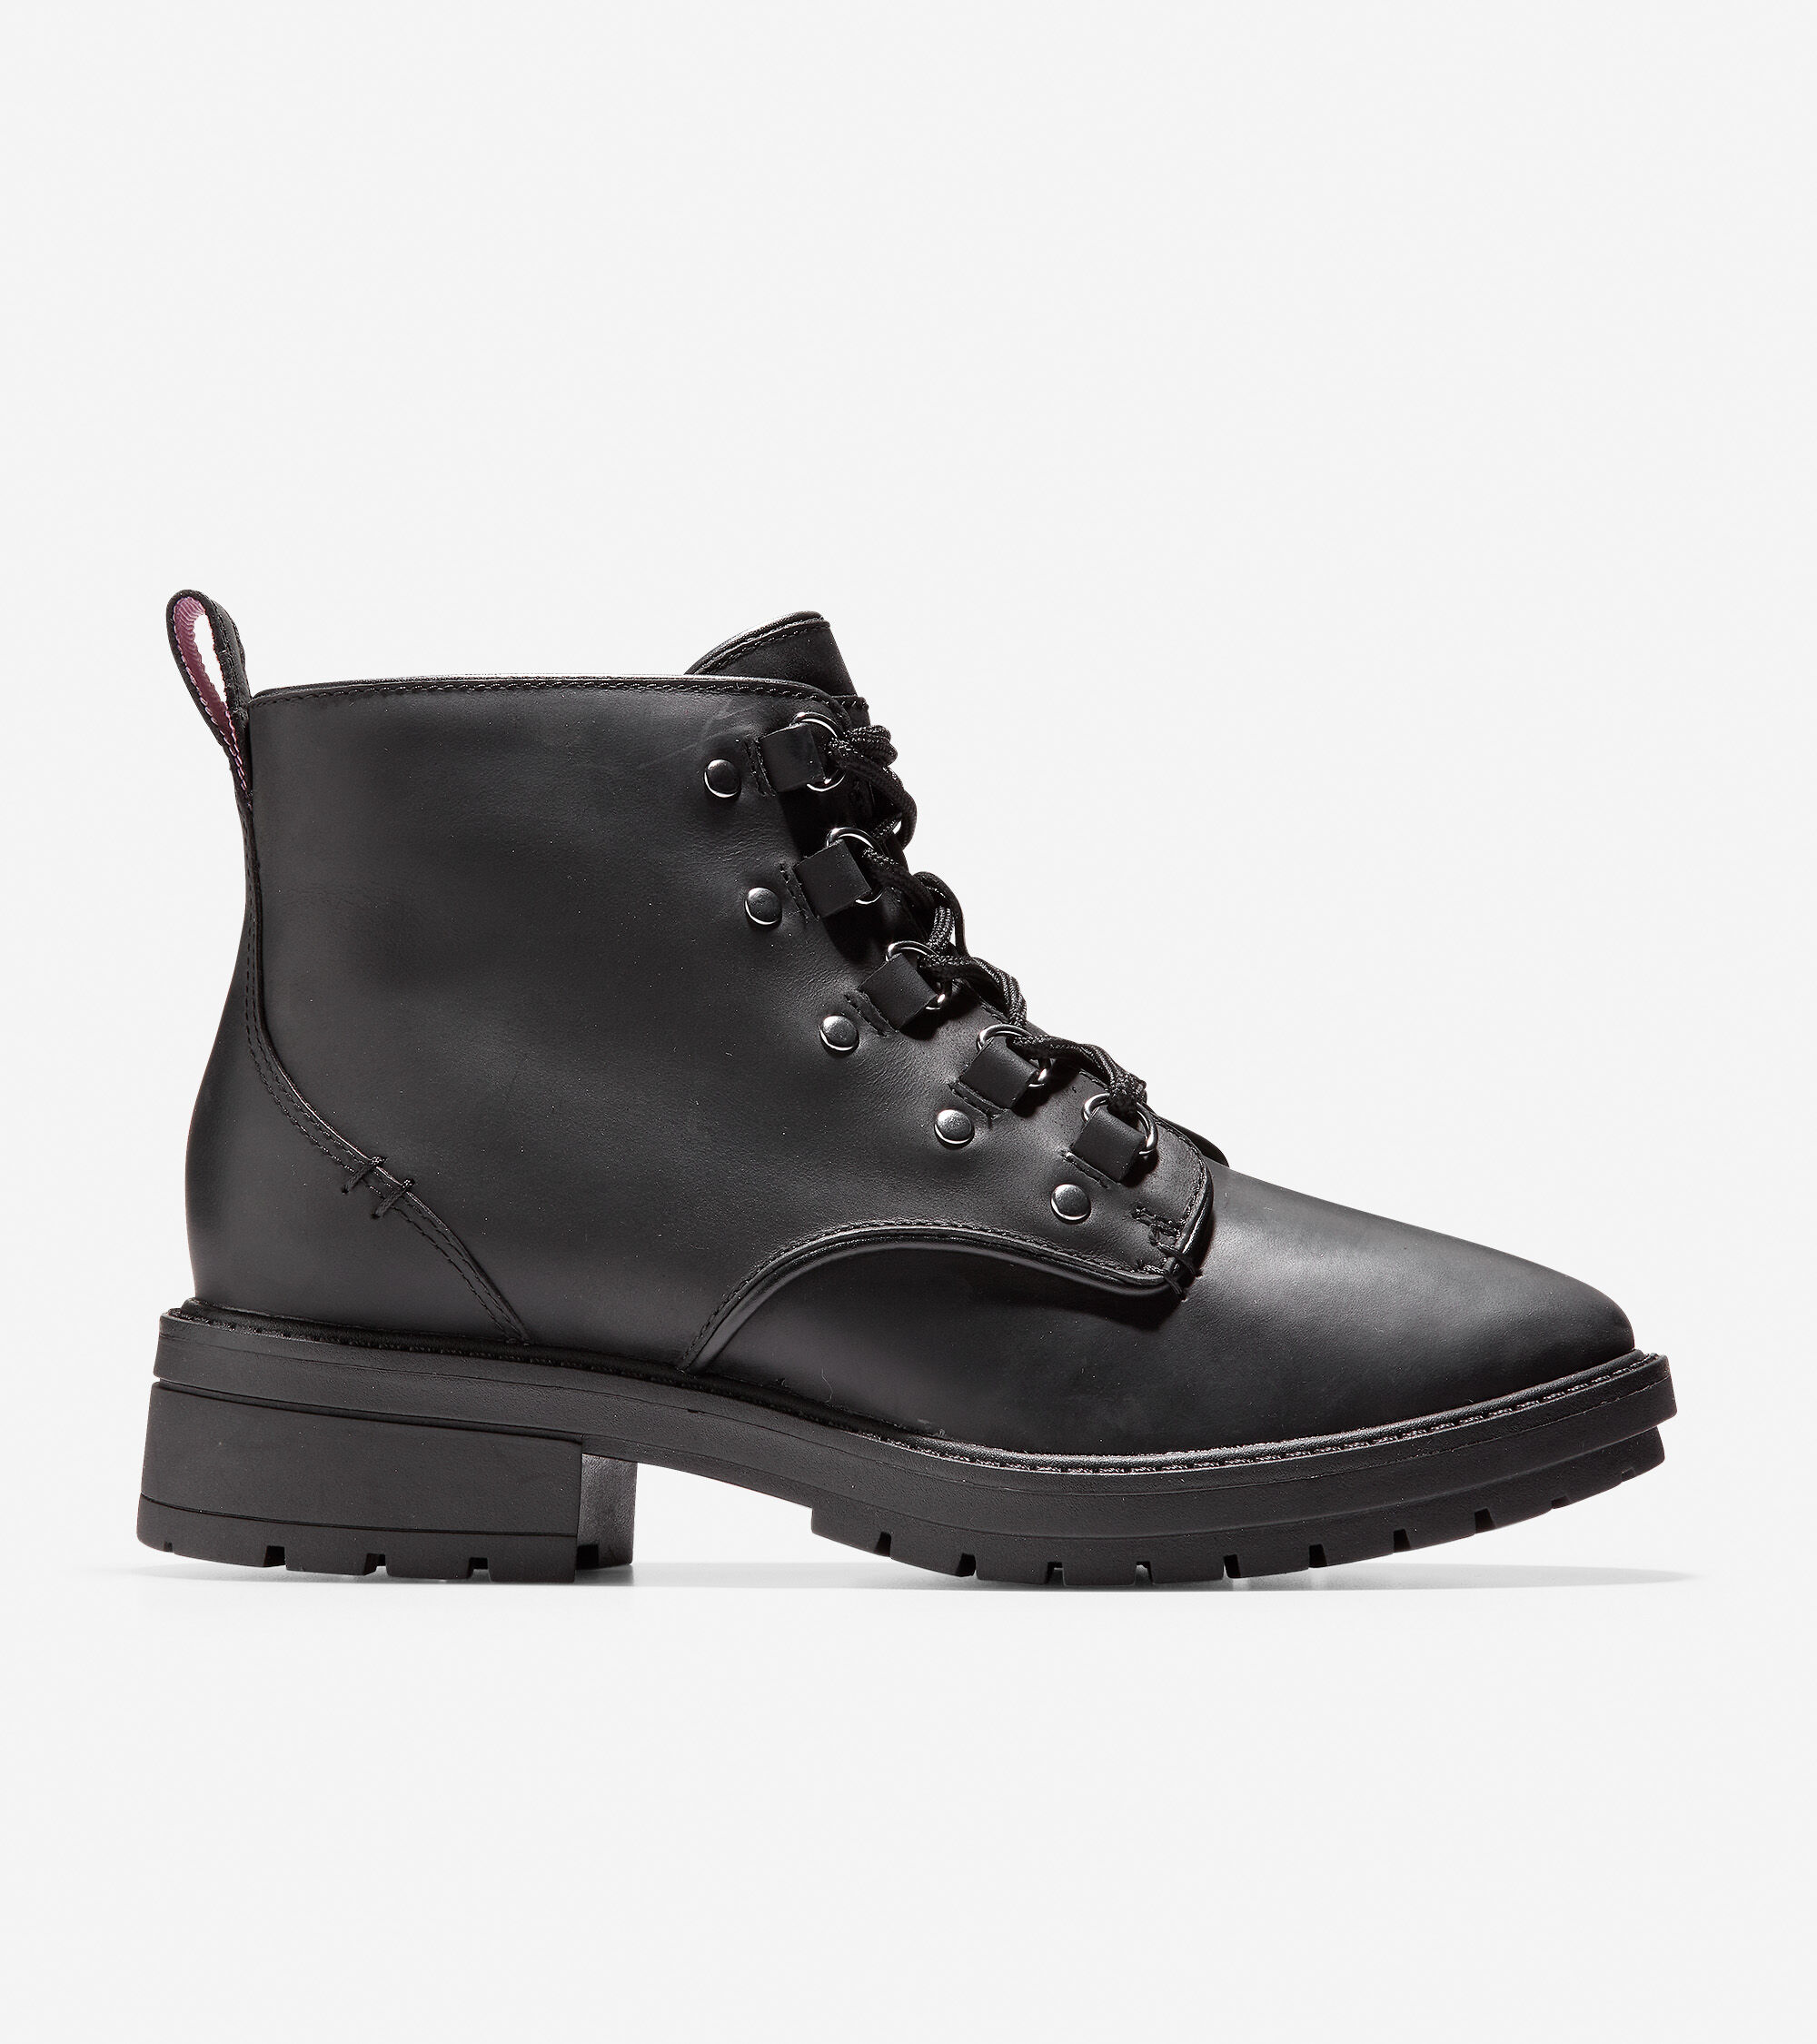 Cole Haan Women's Briana Grand Lace-up Waterproof Hiker Boot